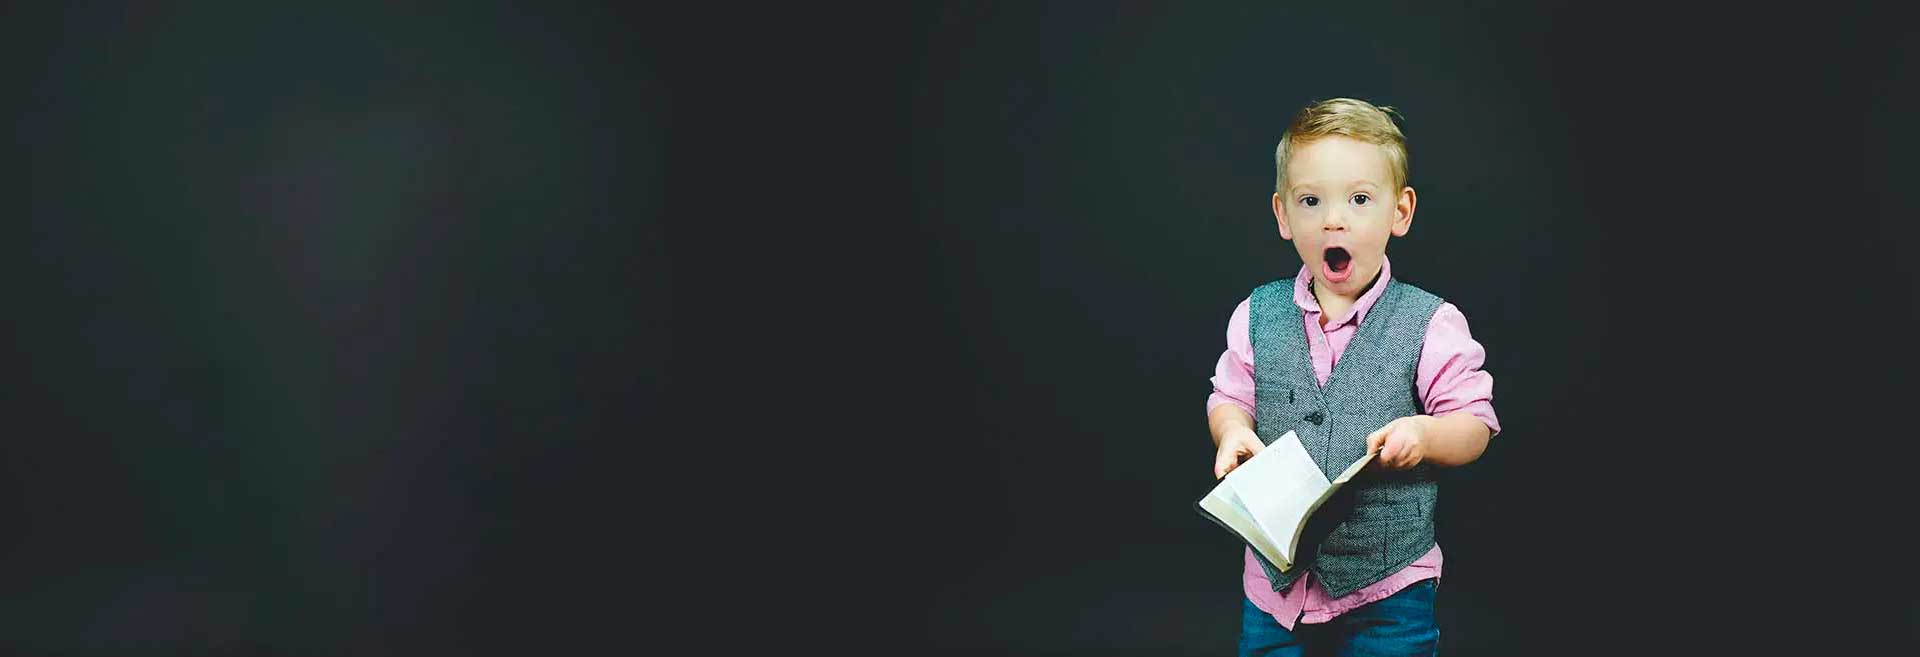 Boy with book - No Joining Fee End Of Year